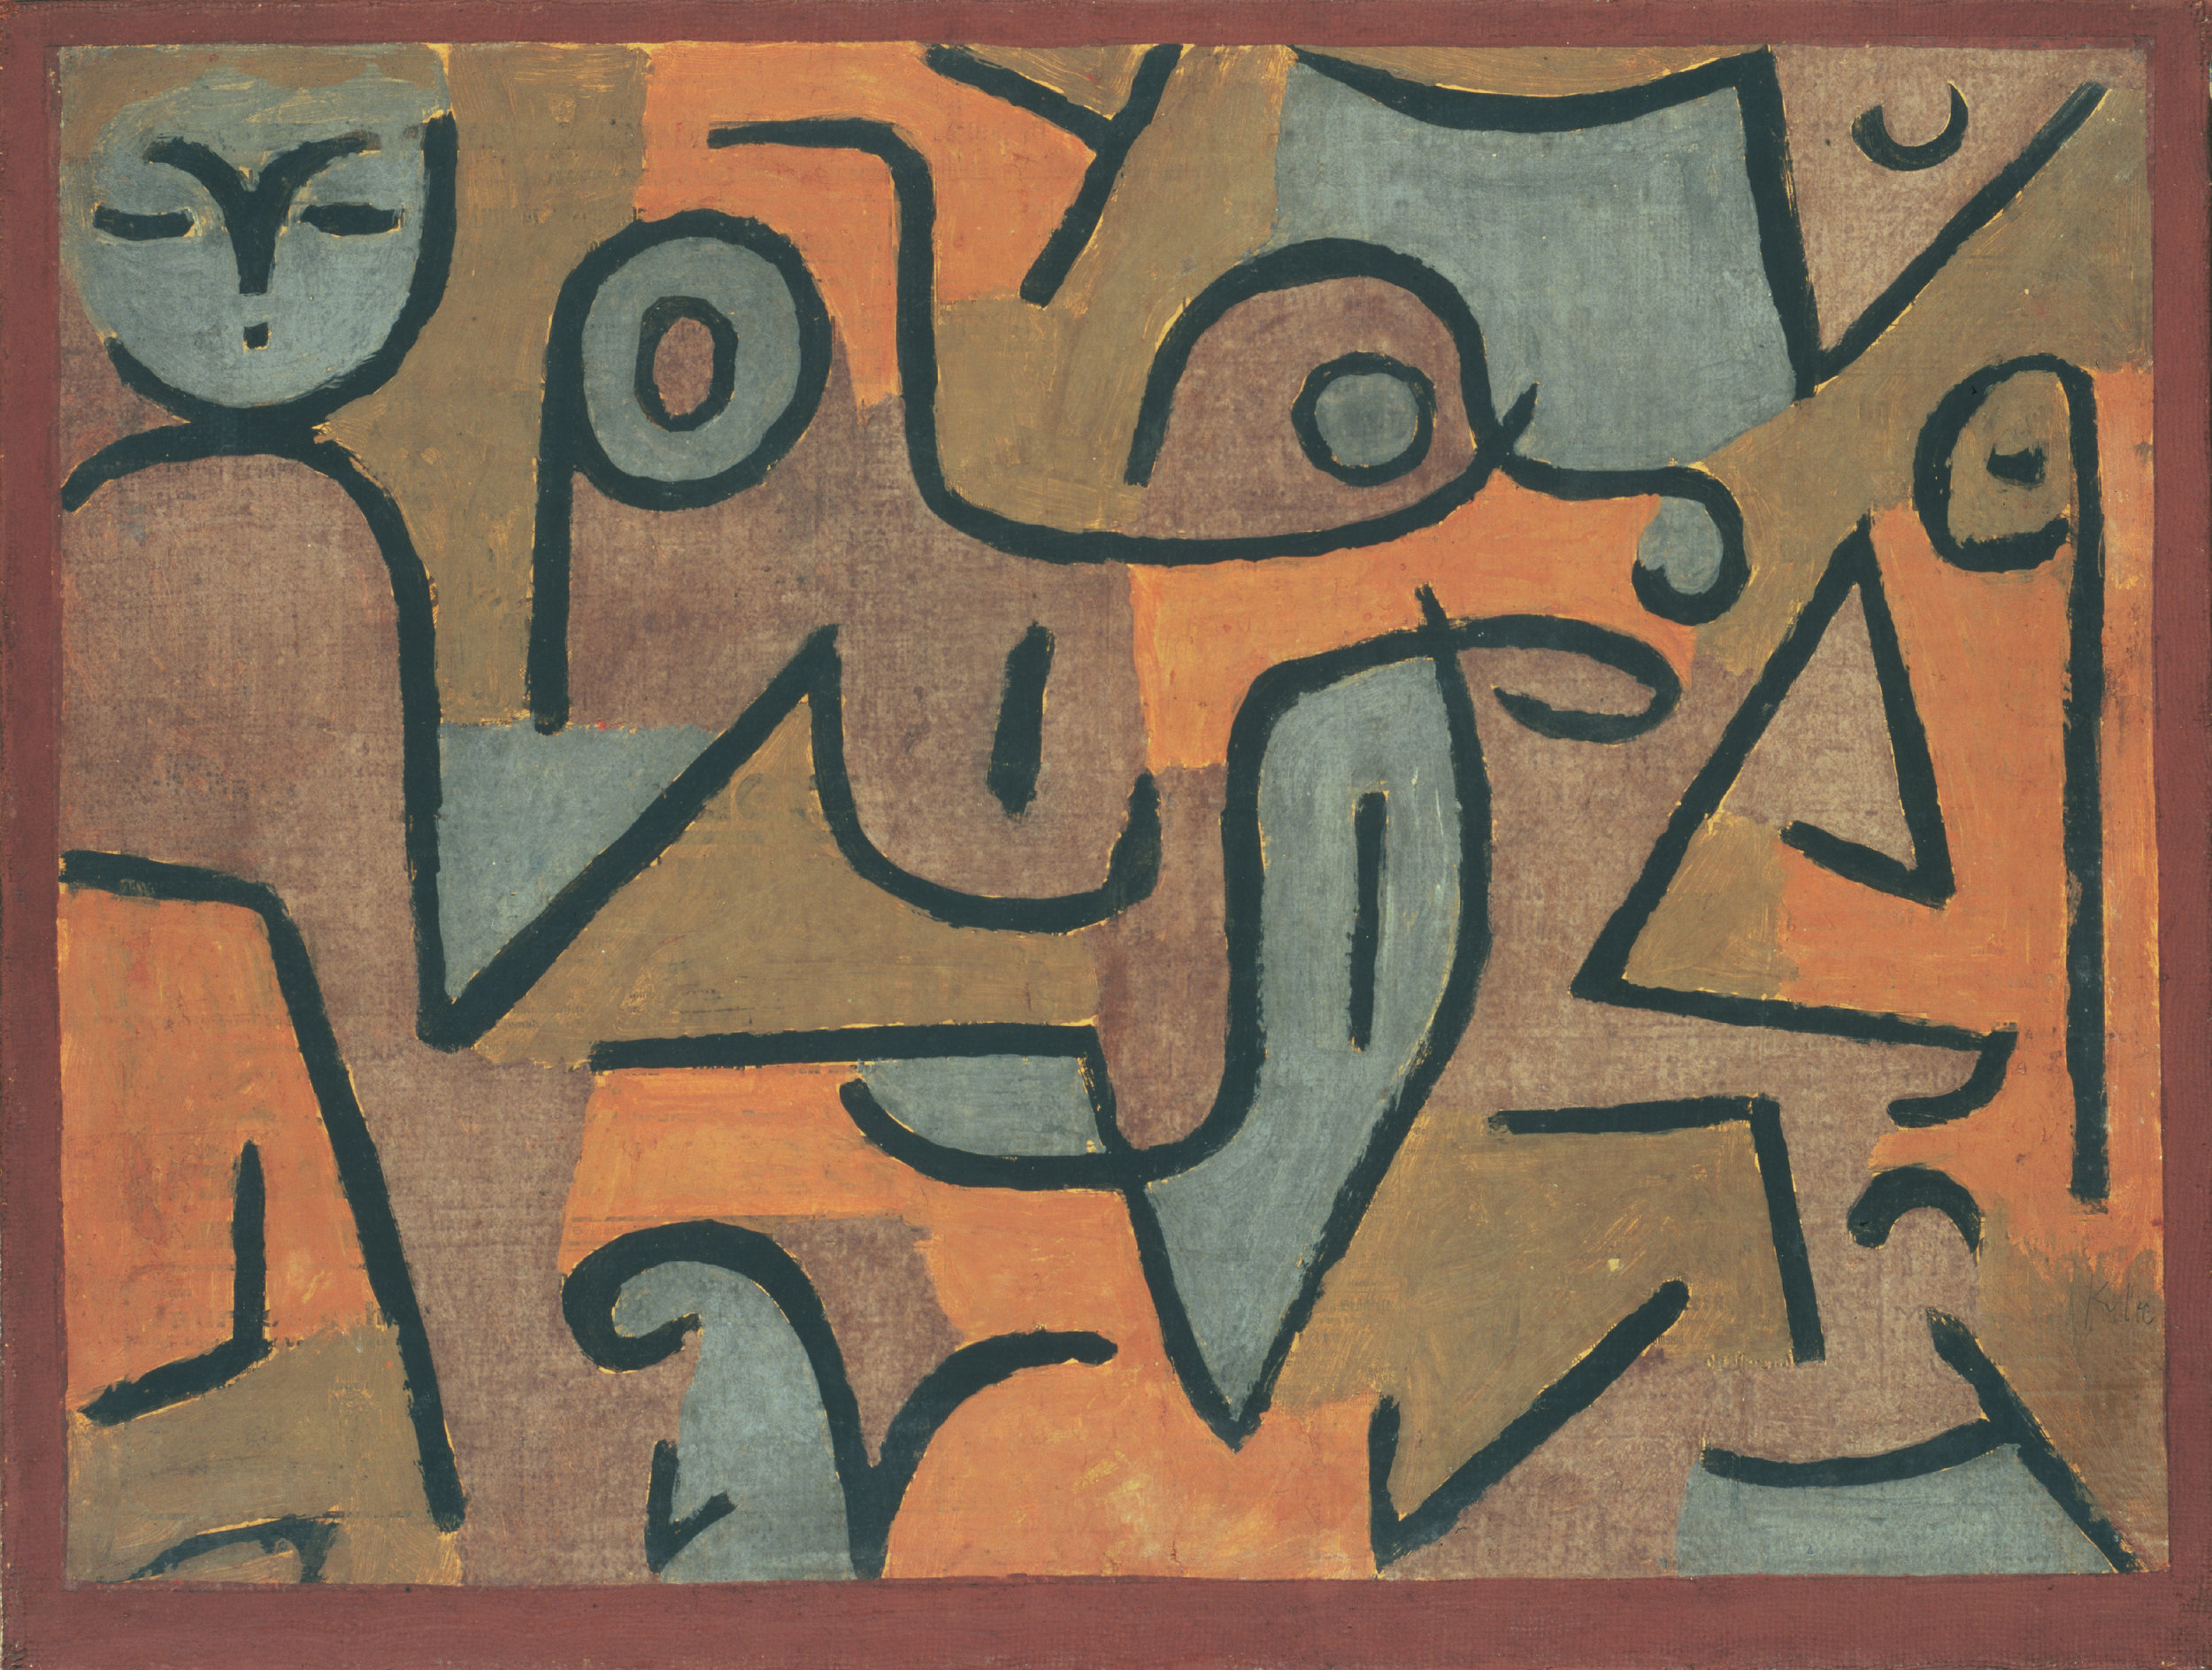 Paul Klee,  Young Moe , 1938. The Phillips Collection, Washington, DC.